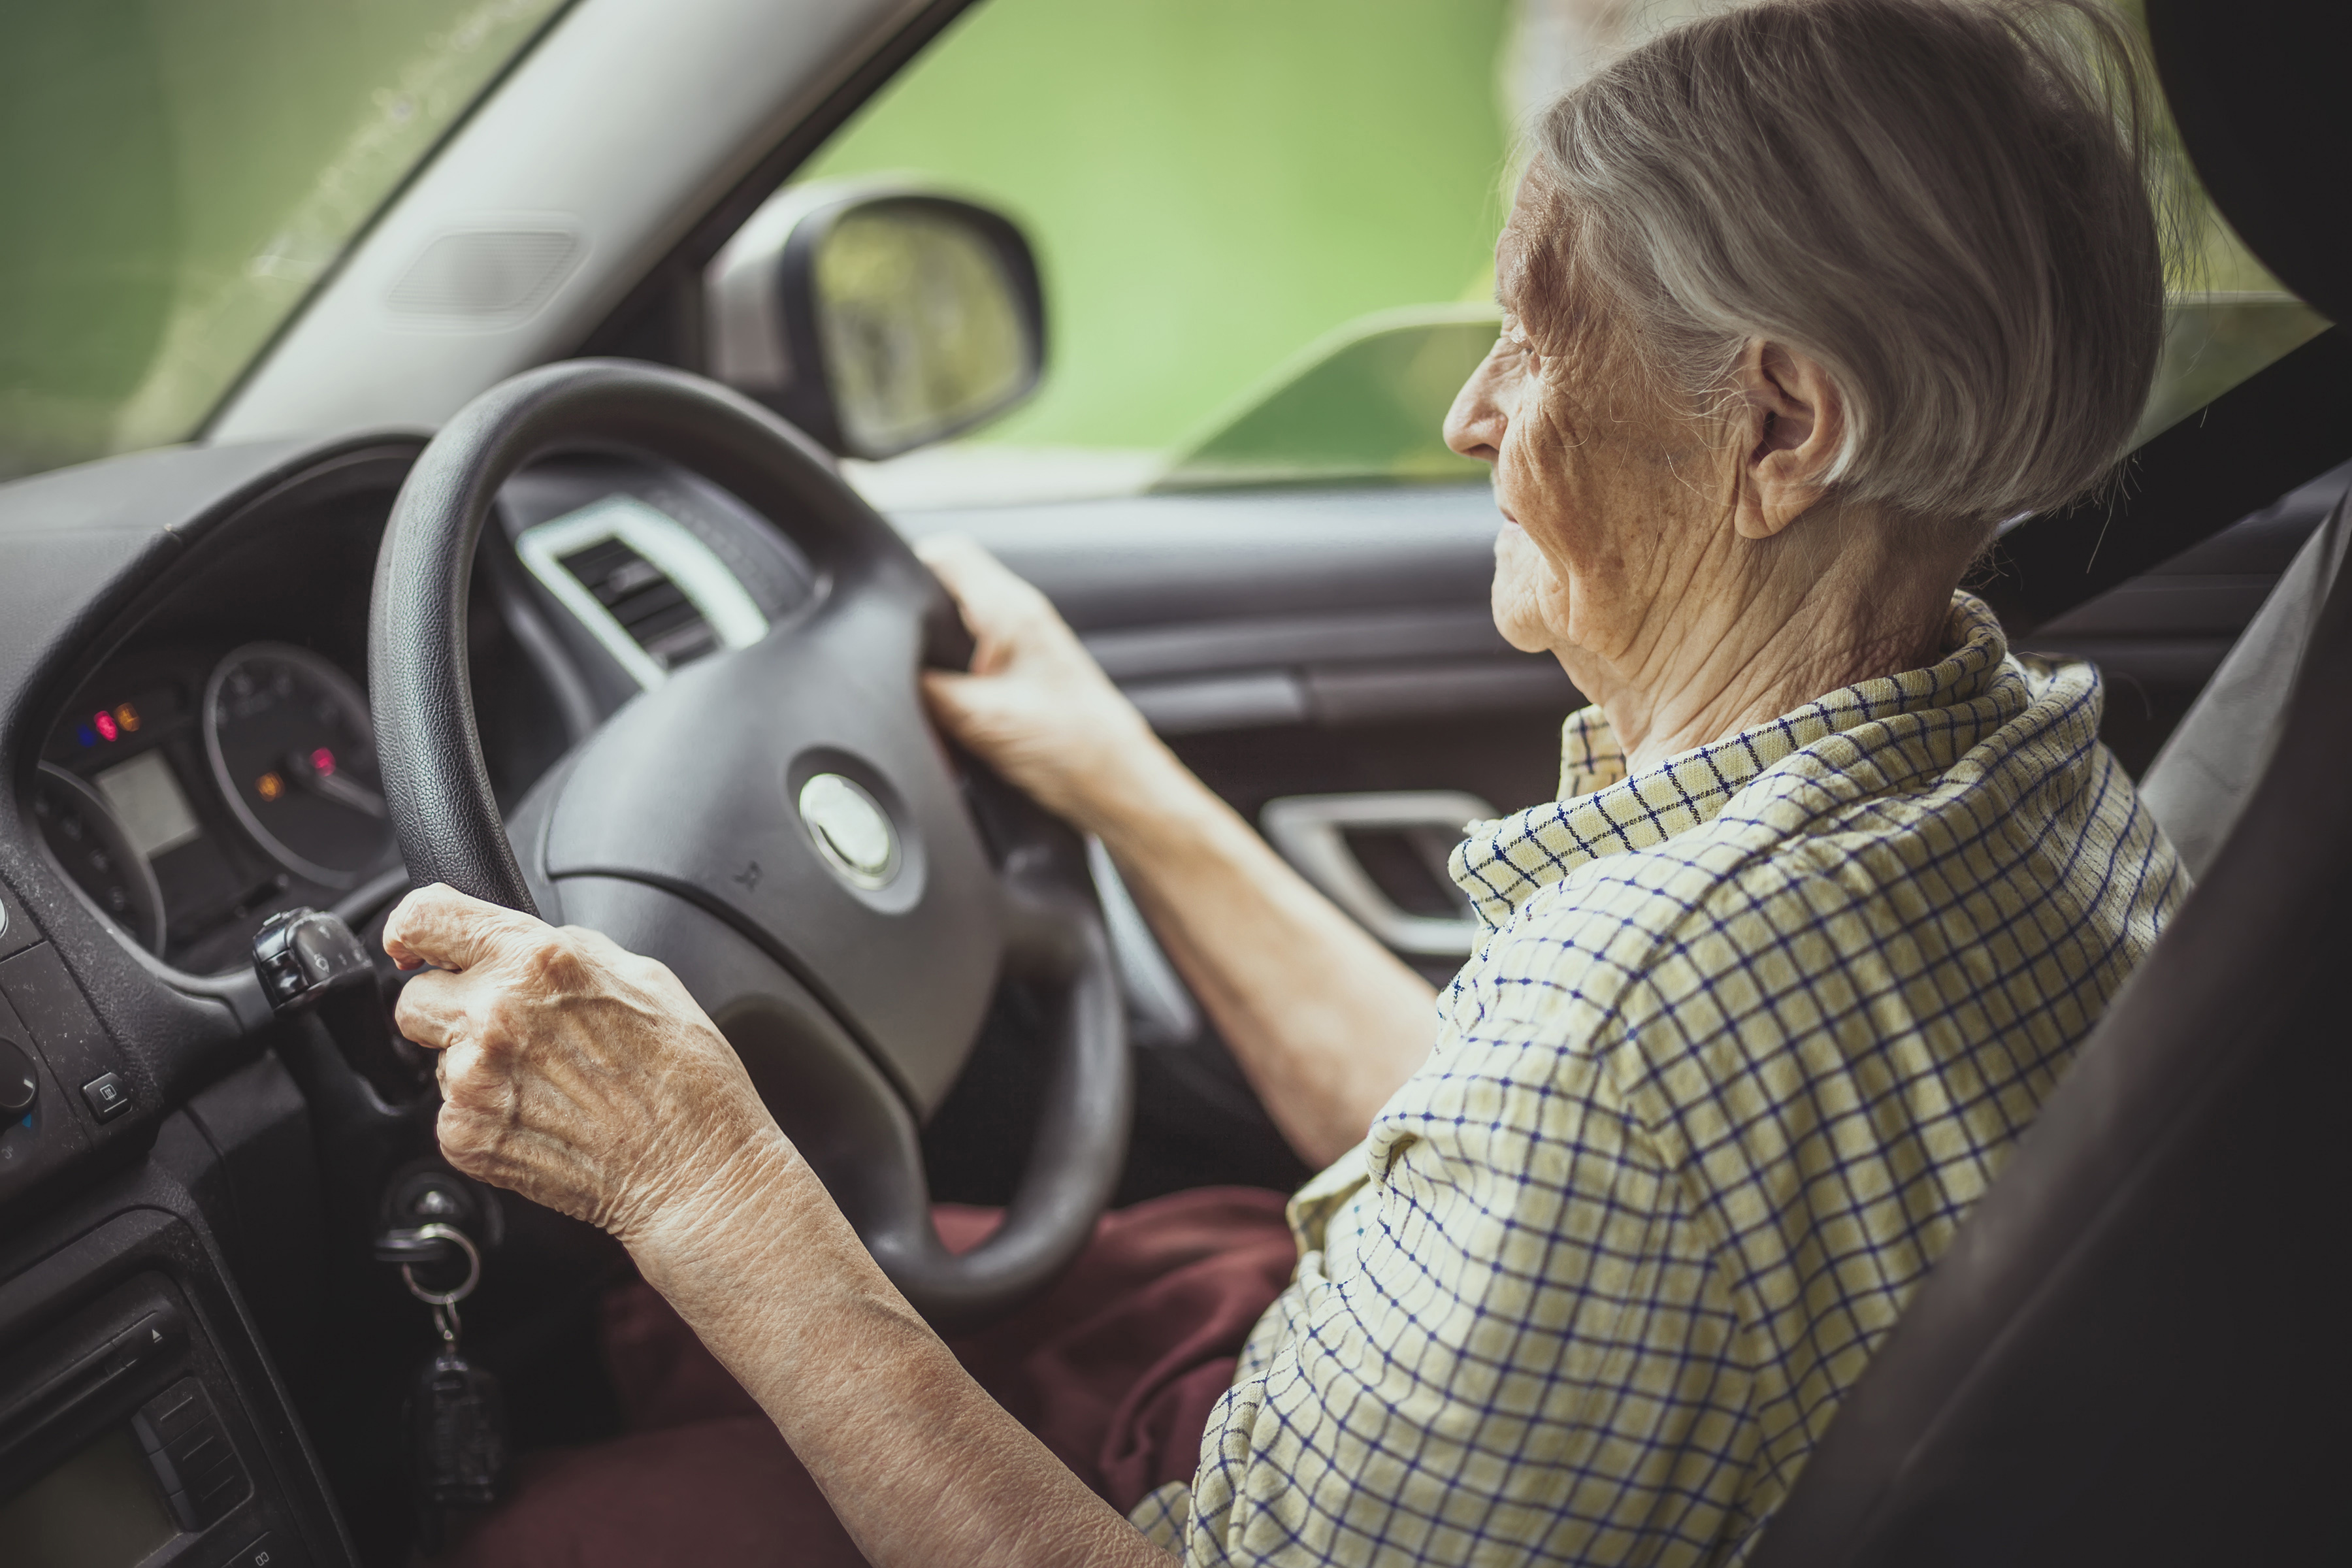 Article image for Staggering number of ageing drivers prompts seaside town to launch elderly driving courses